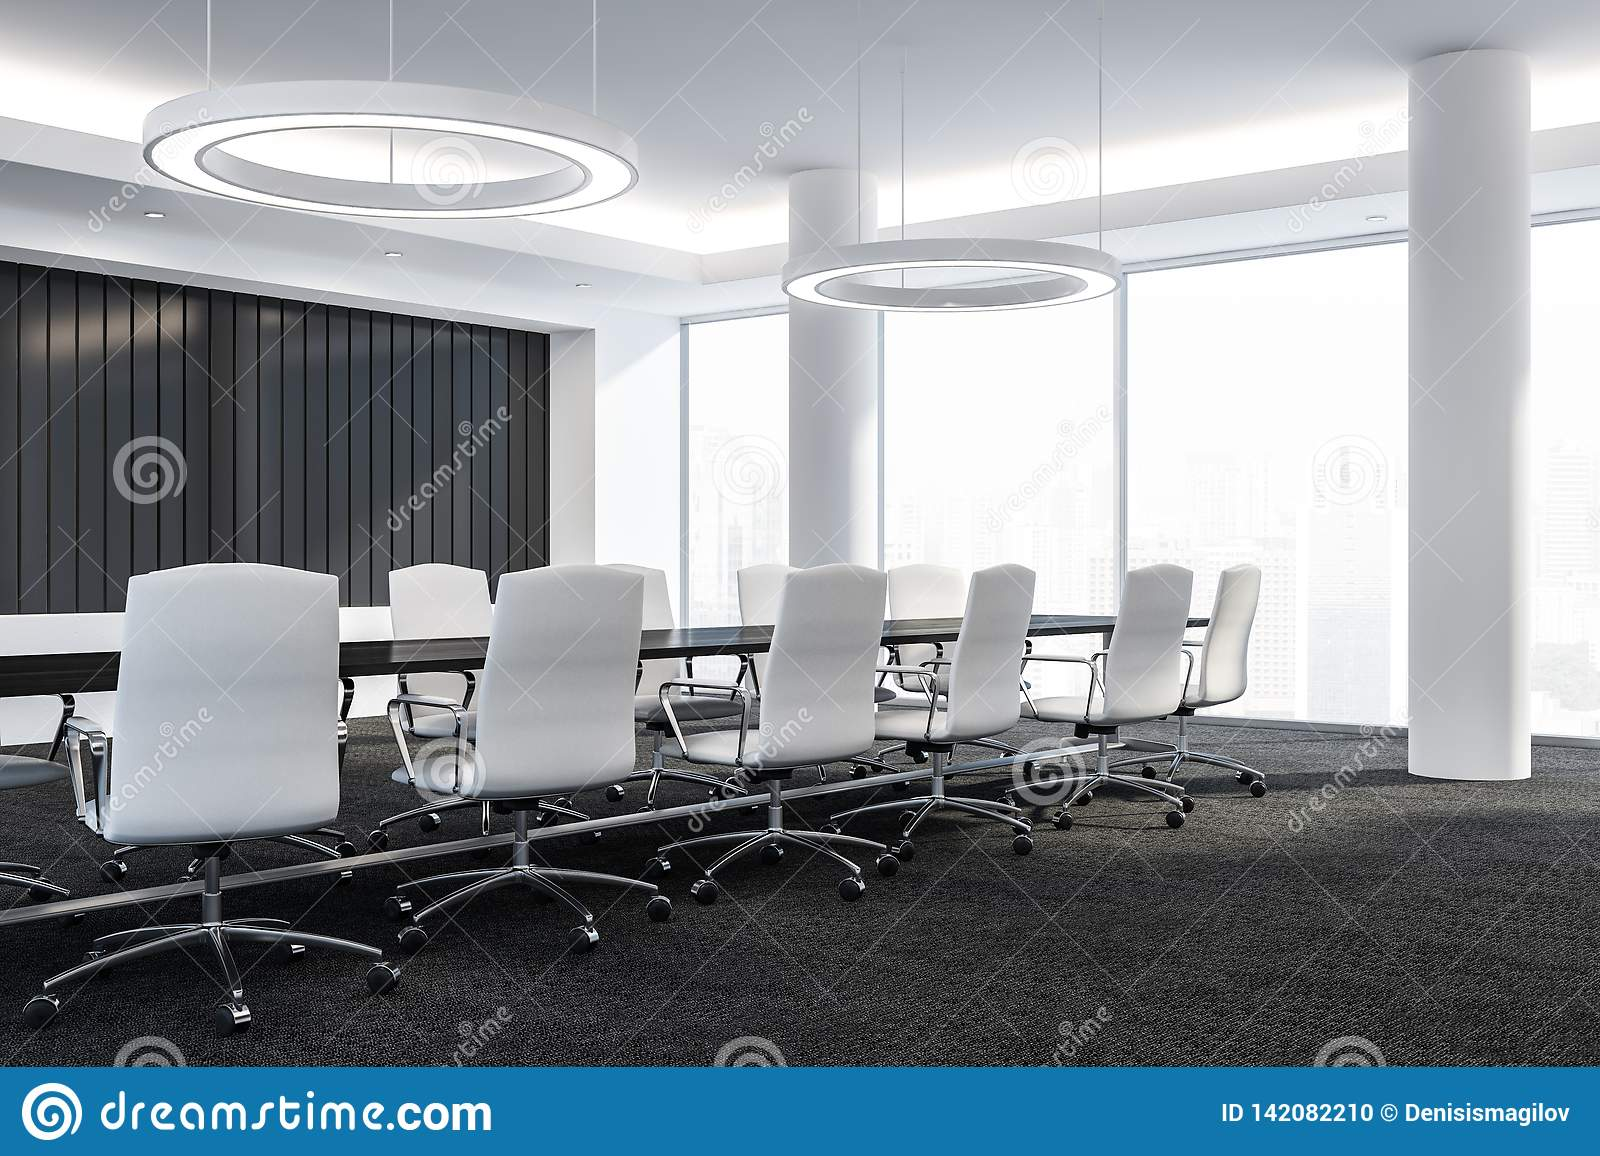 Modern Design Conference Room With Furniture, Big Windows And City View 3D  Render Stock Illustration - Illustration of corporate, boardroom: 142082210